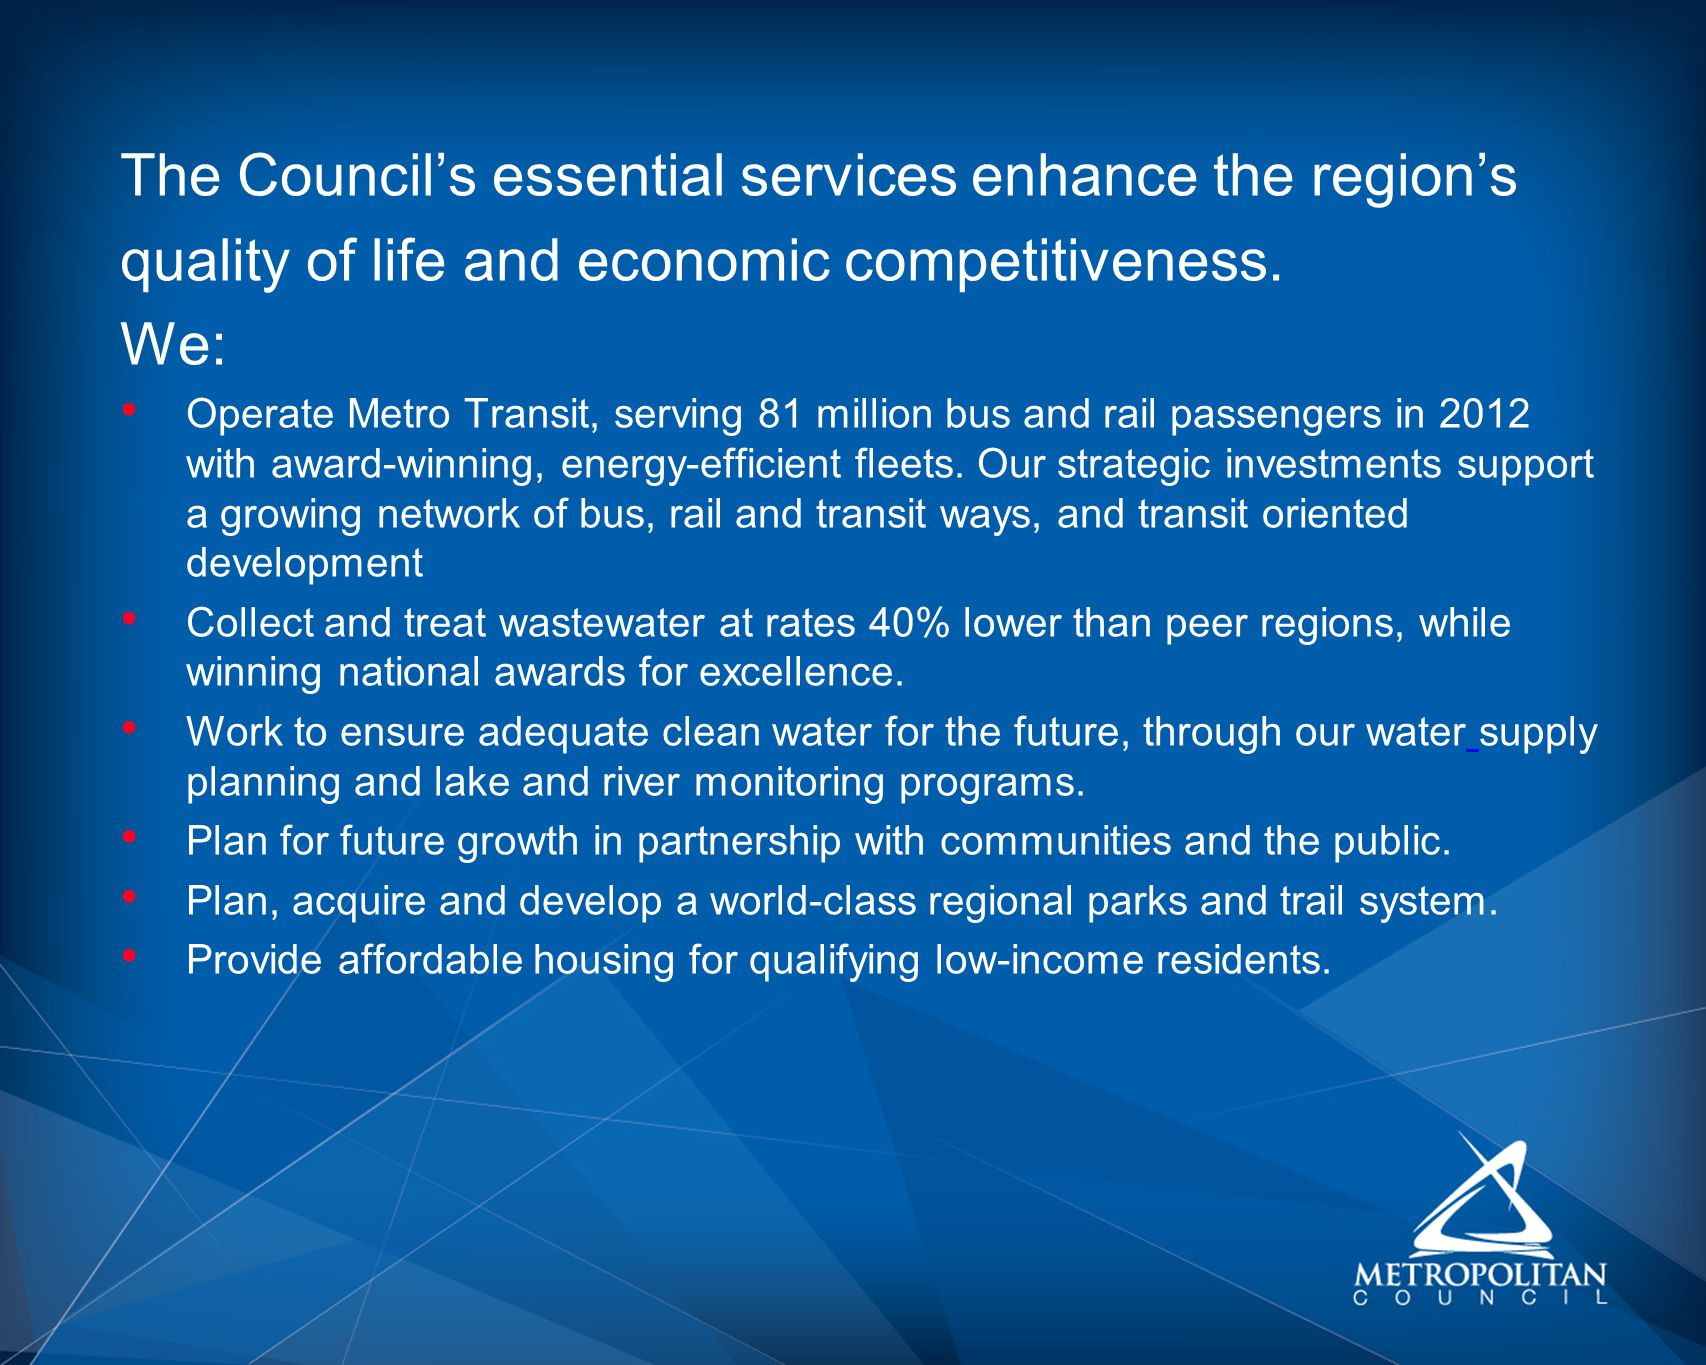 The Councils essential services enhance the regions quality of life and economic competitiveness.